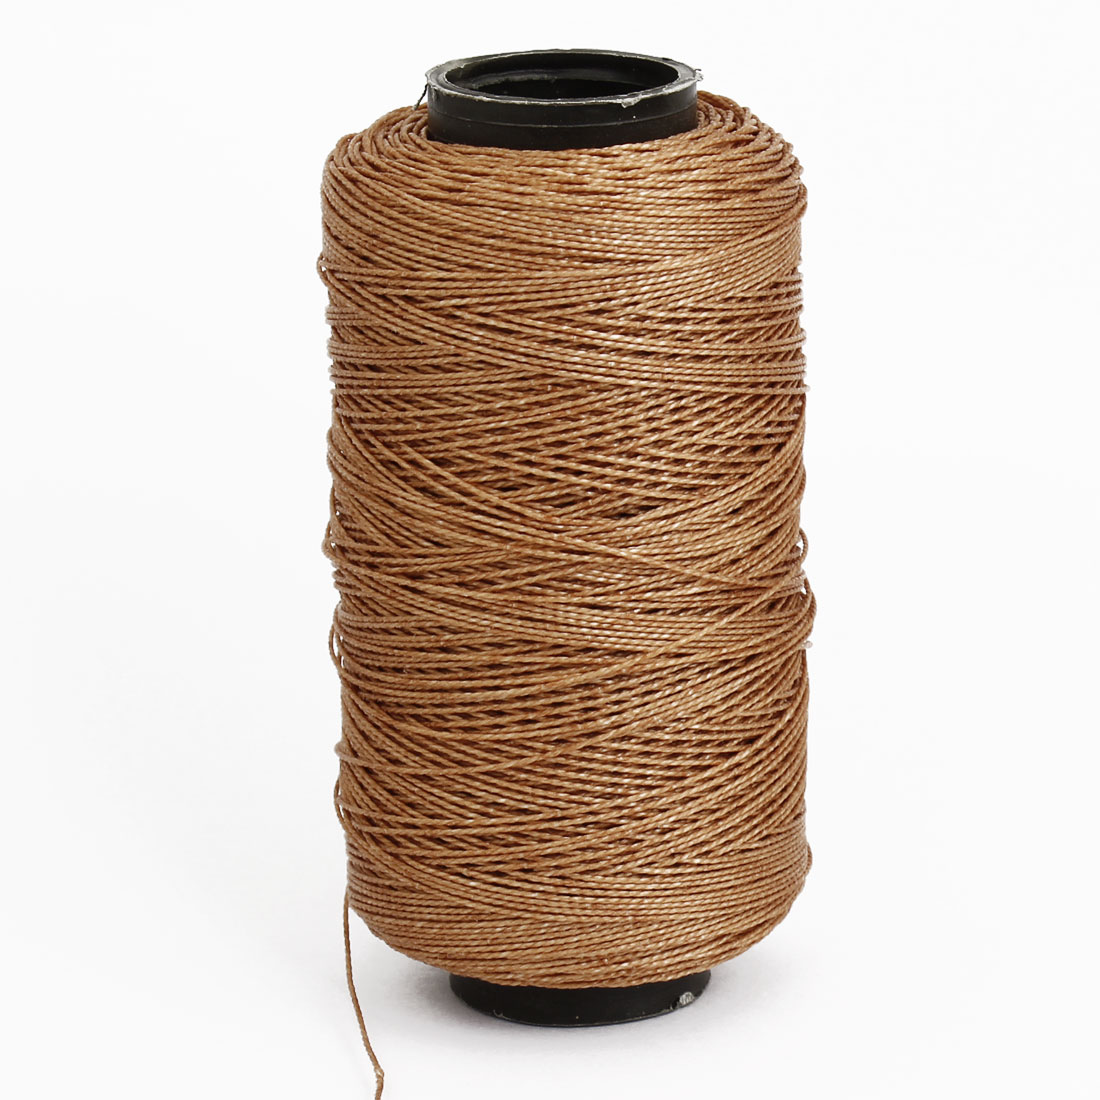 Outdoor Activity Nylon Twisted Kite String Line Roll Light Brown